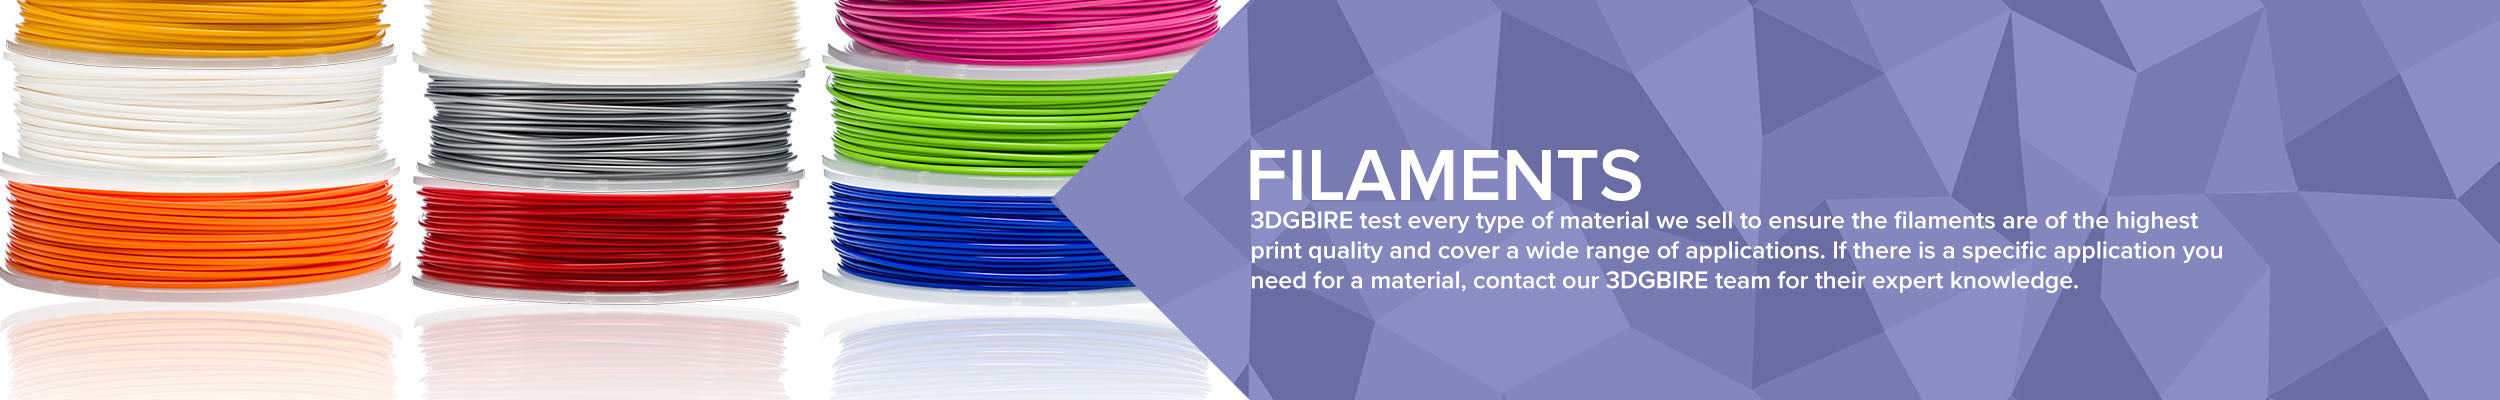 3D Printer Filaments UK | Ultimaker Filaments | Innofil Filaments